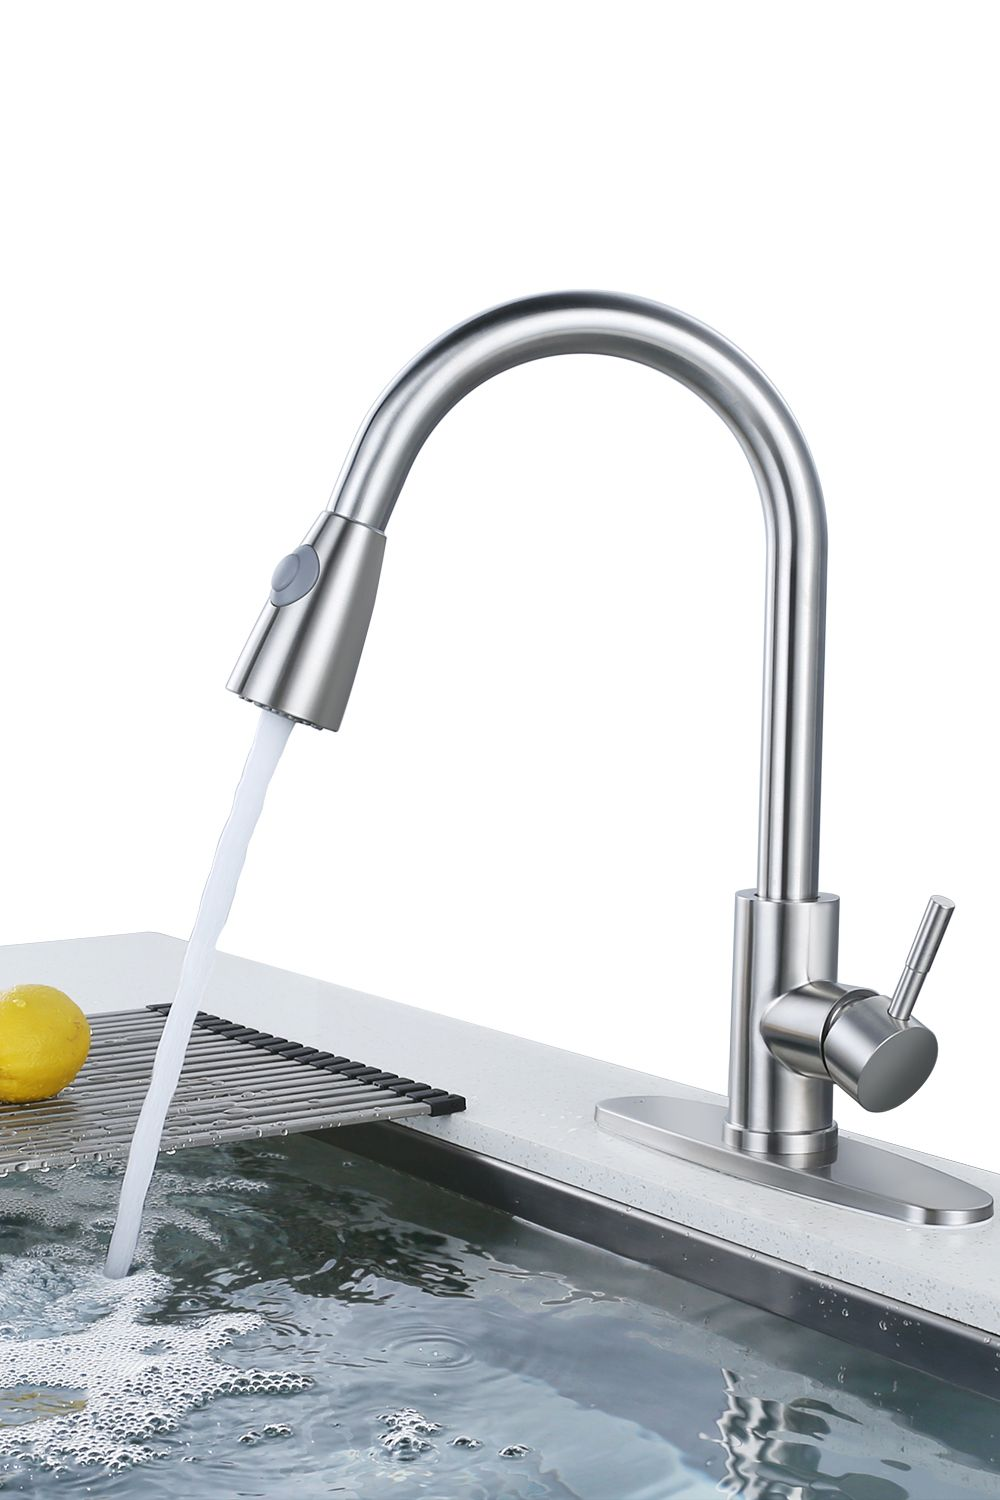 Wowow Top Rated Pull Down Kitchen Faucets Single Hole Wowowfaucet In 2020 Kitchen Faucet Faucet Handles Stainless Steel Kitchen Faucet